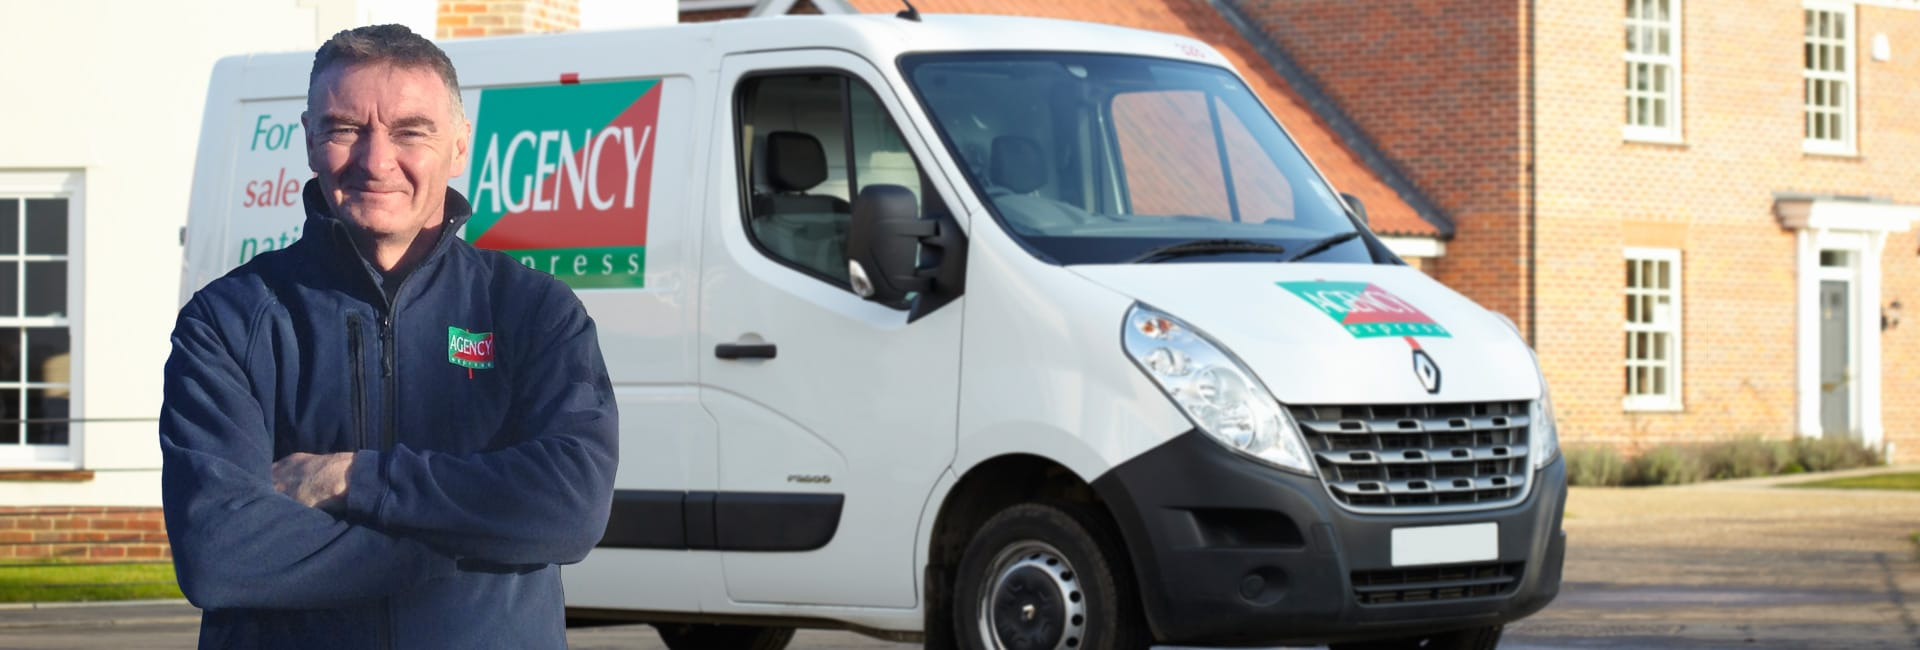 Agency Express franchise case study. Franchisee John Burke with van.